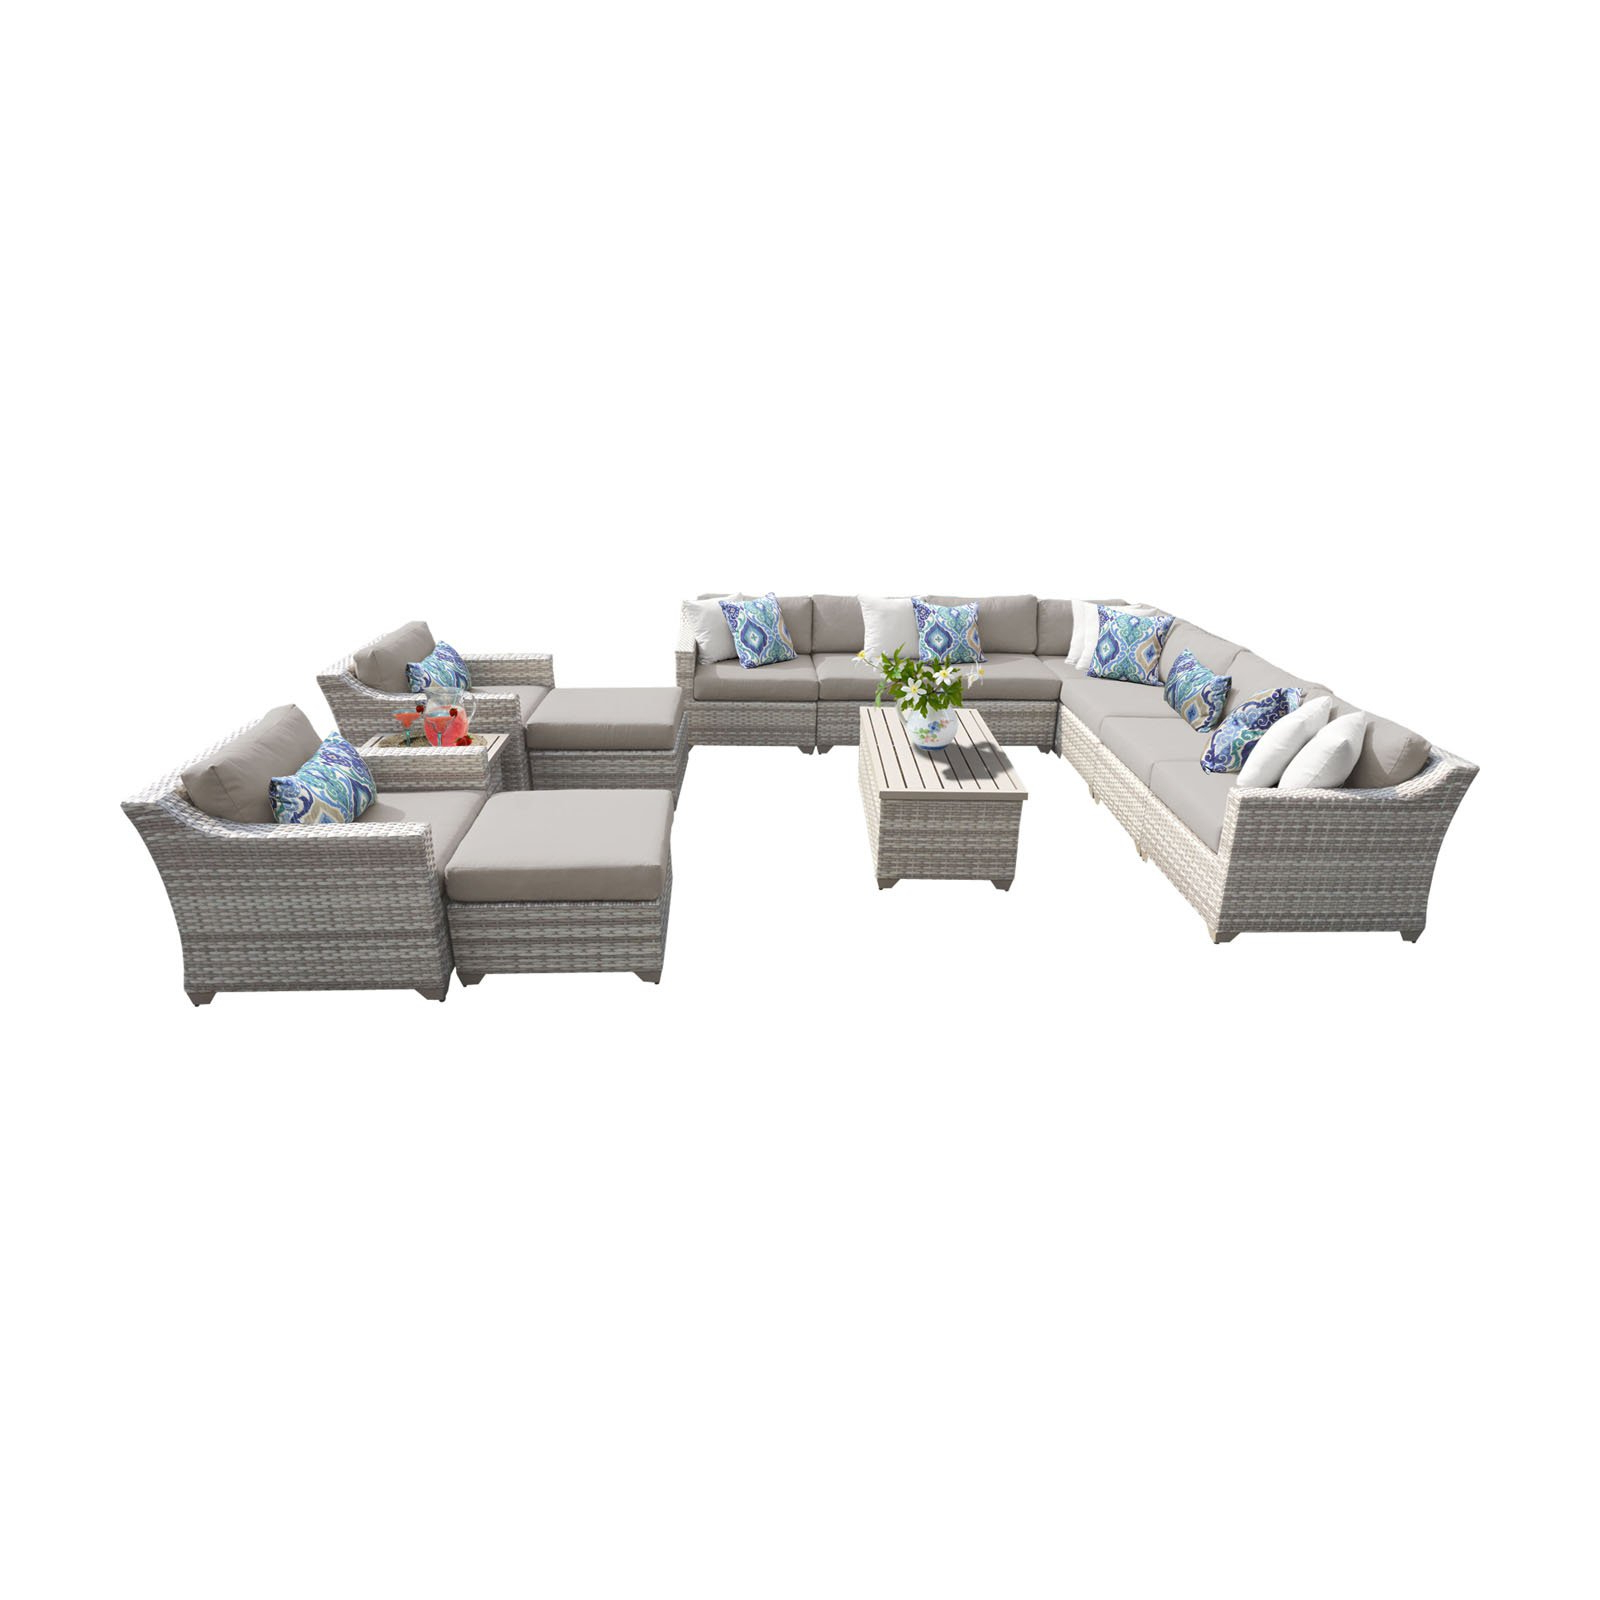 Outdoor Tk Classics Fairmont All Weather Wicker 13 Piece With Regard To Most Recent Outdoor 13 Piece Wicker Patio Sets With Cushions (Gallery 10 of 25)